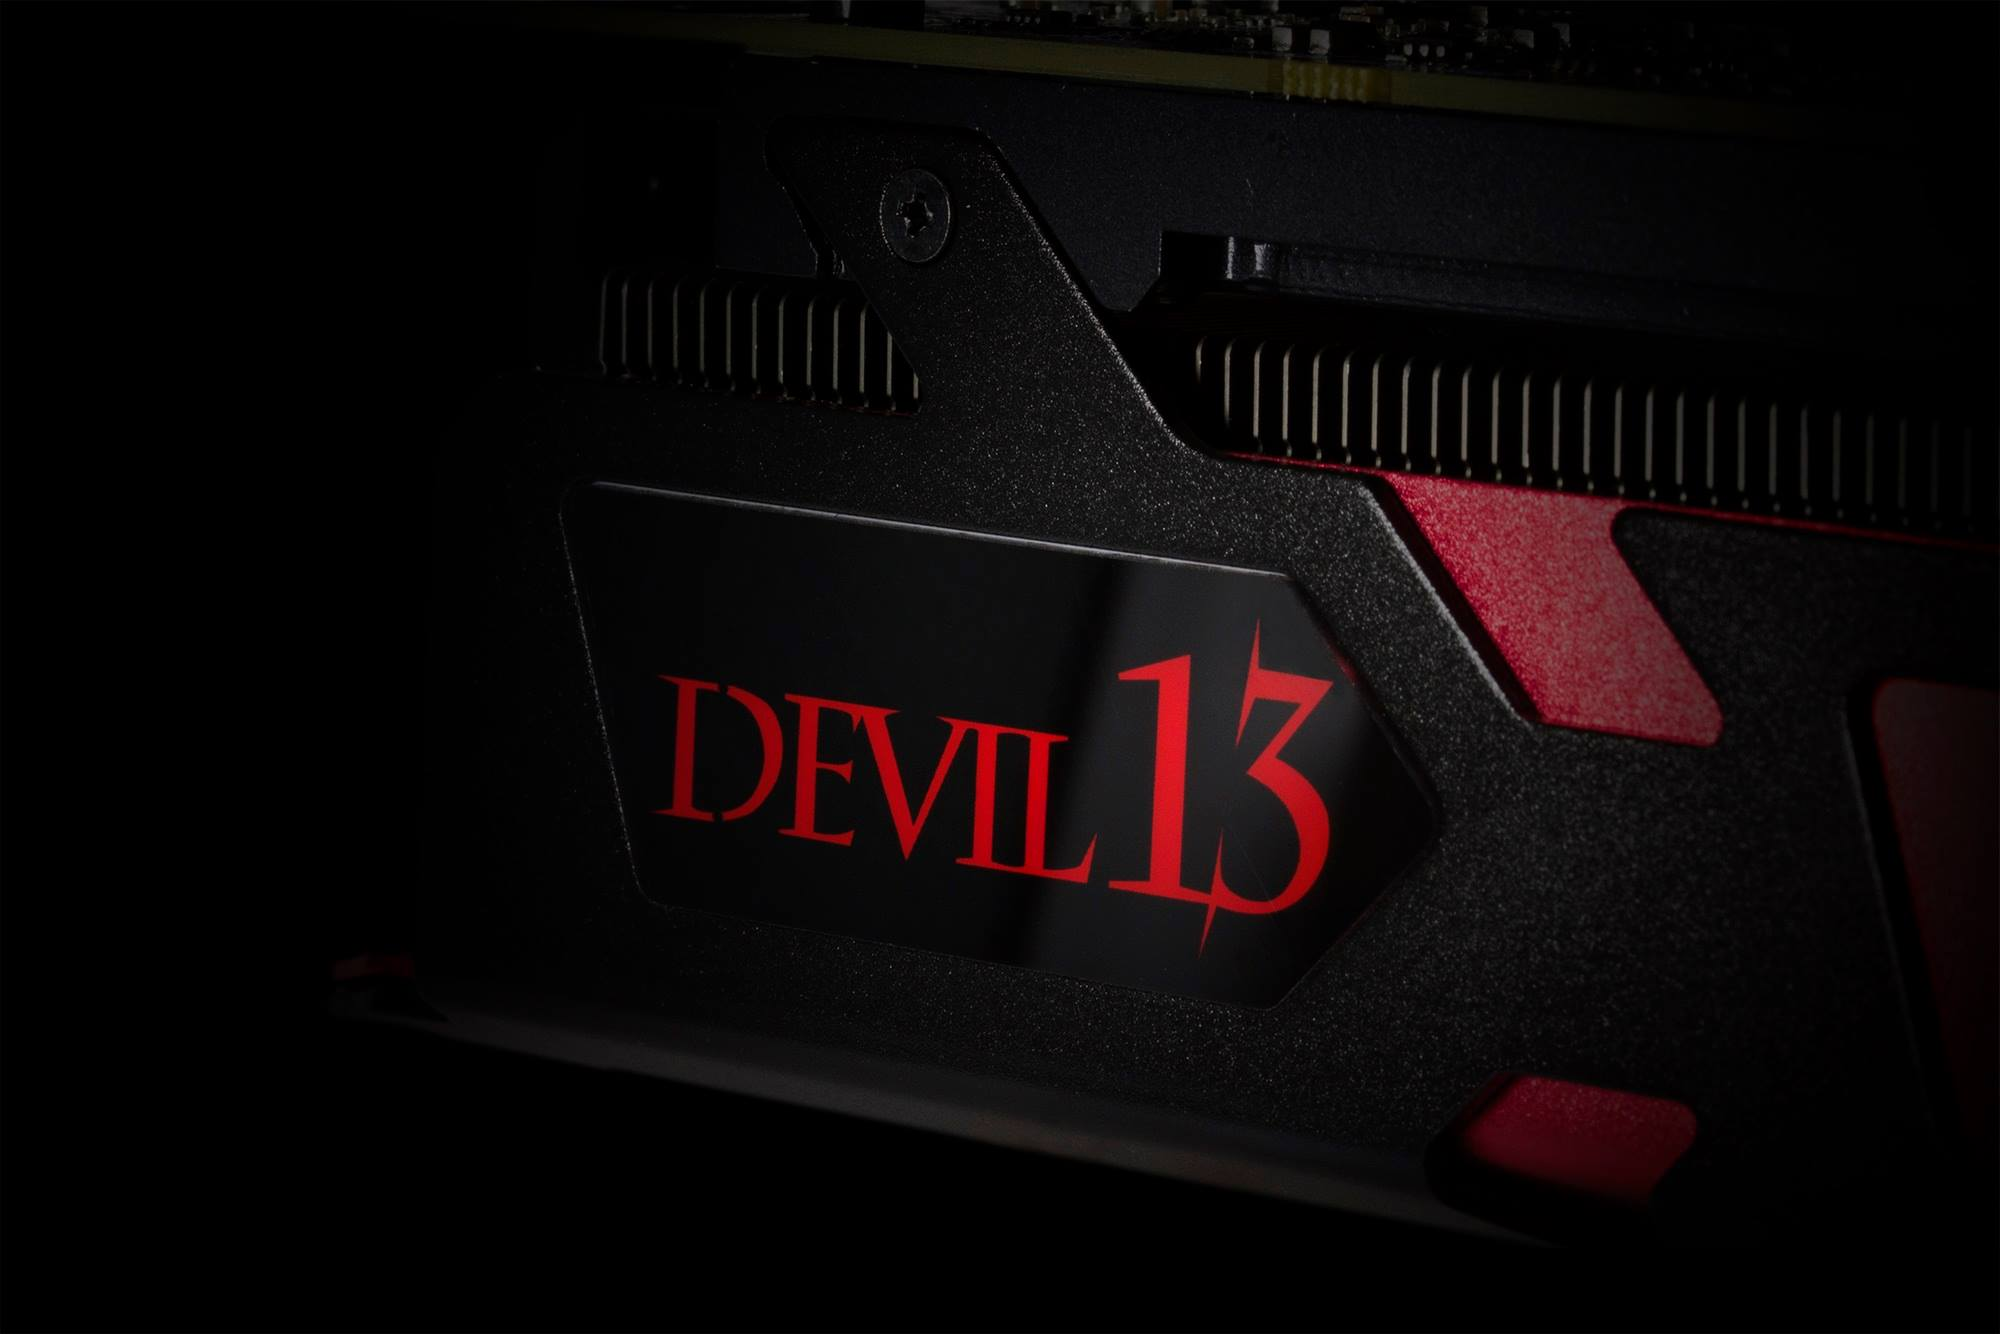 China Wallpaper Full Hd Powercolor Devil 13 R9 295x2 Video Cards Needs Four 8 Pin